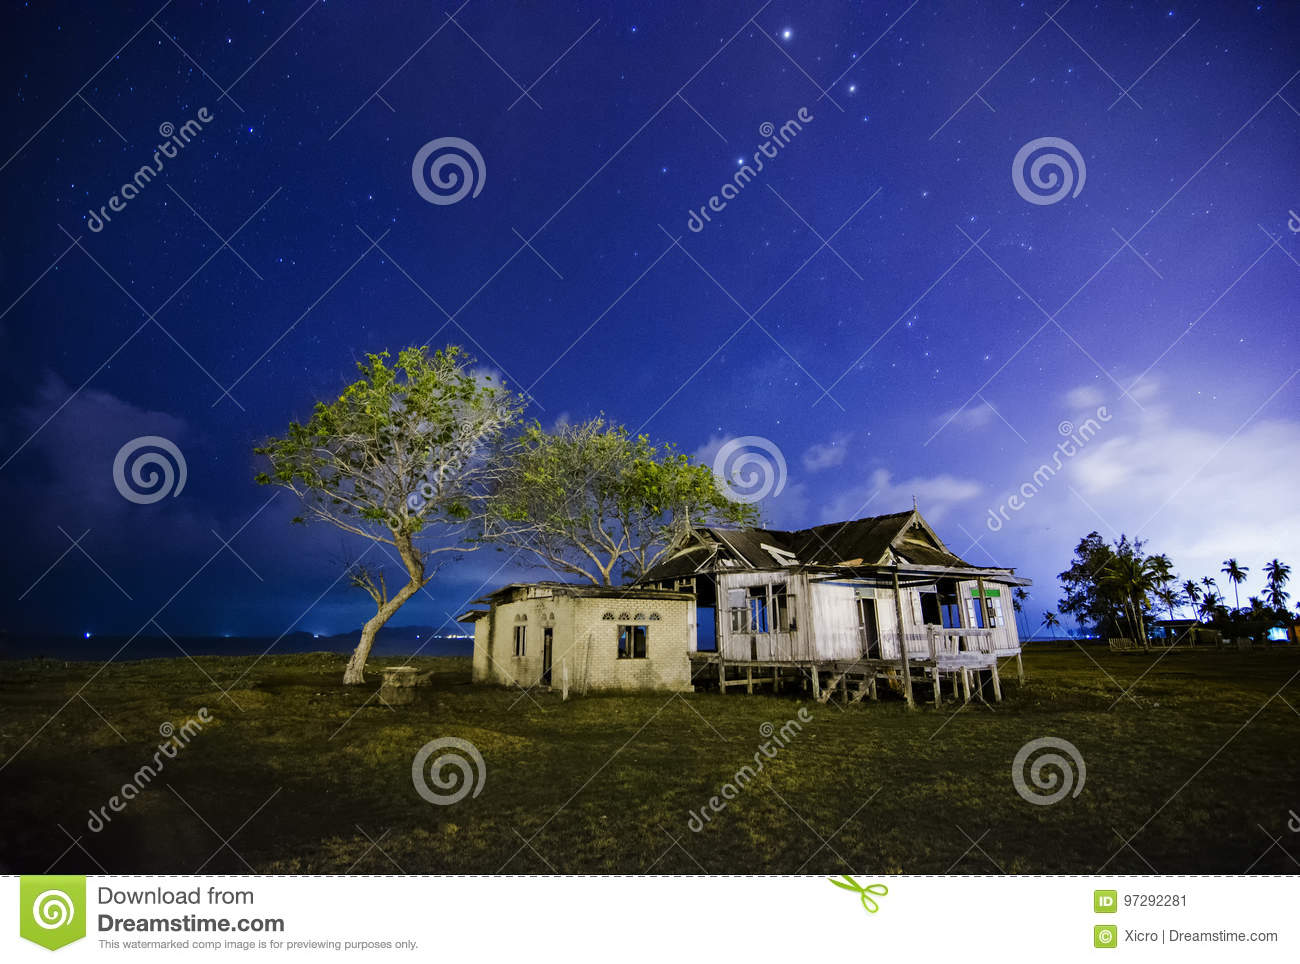 Dilapidated abandon wooden house at night with star and cloudy sky background